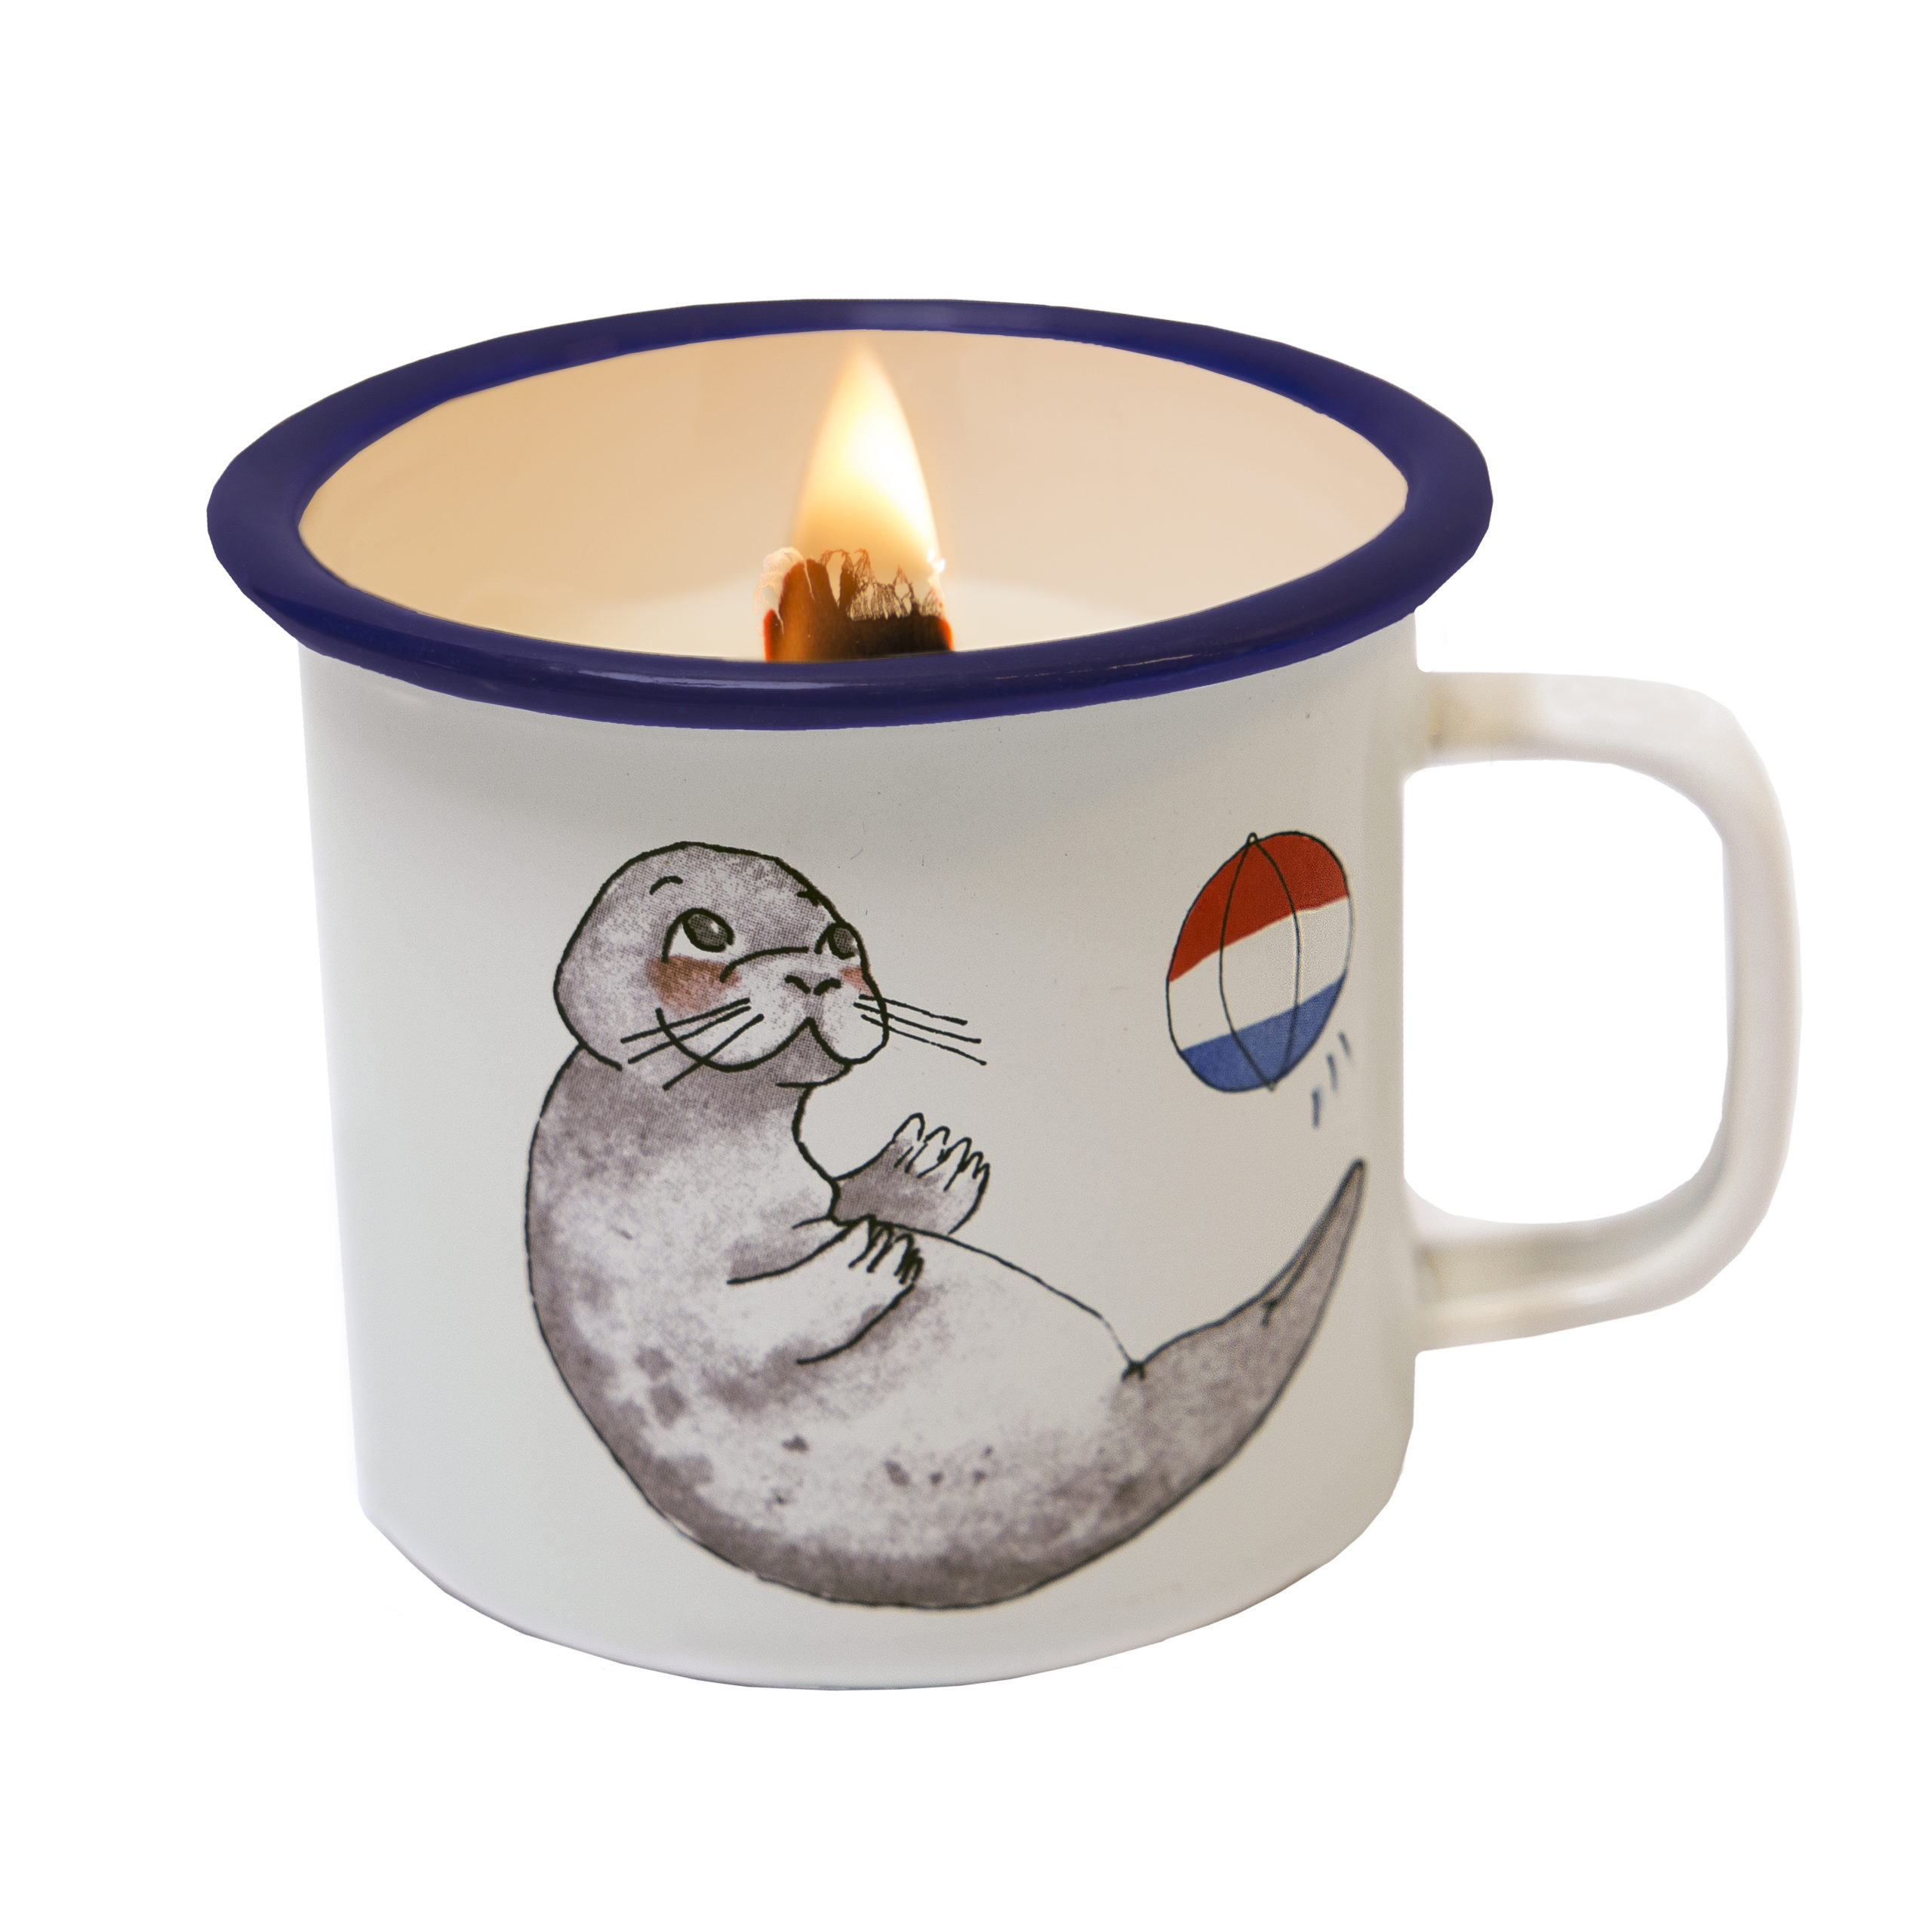 CANDLE IN A CUP SEAL JOYIN